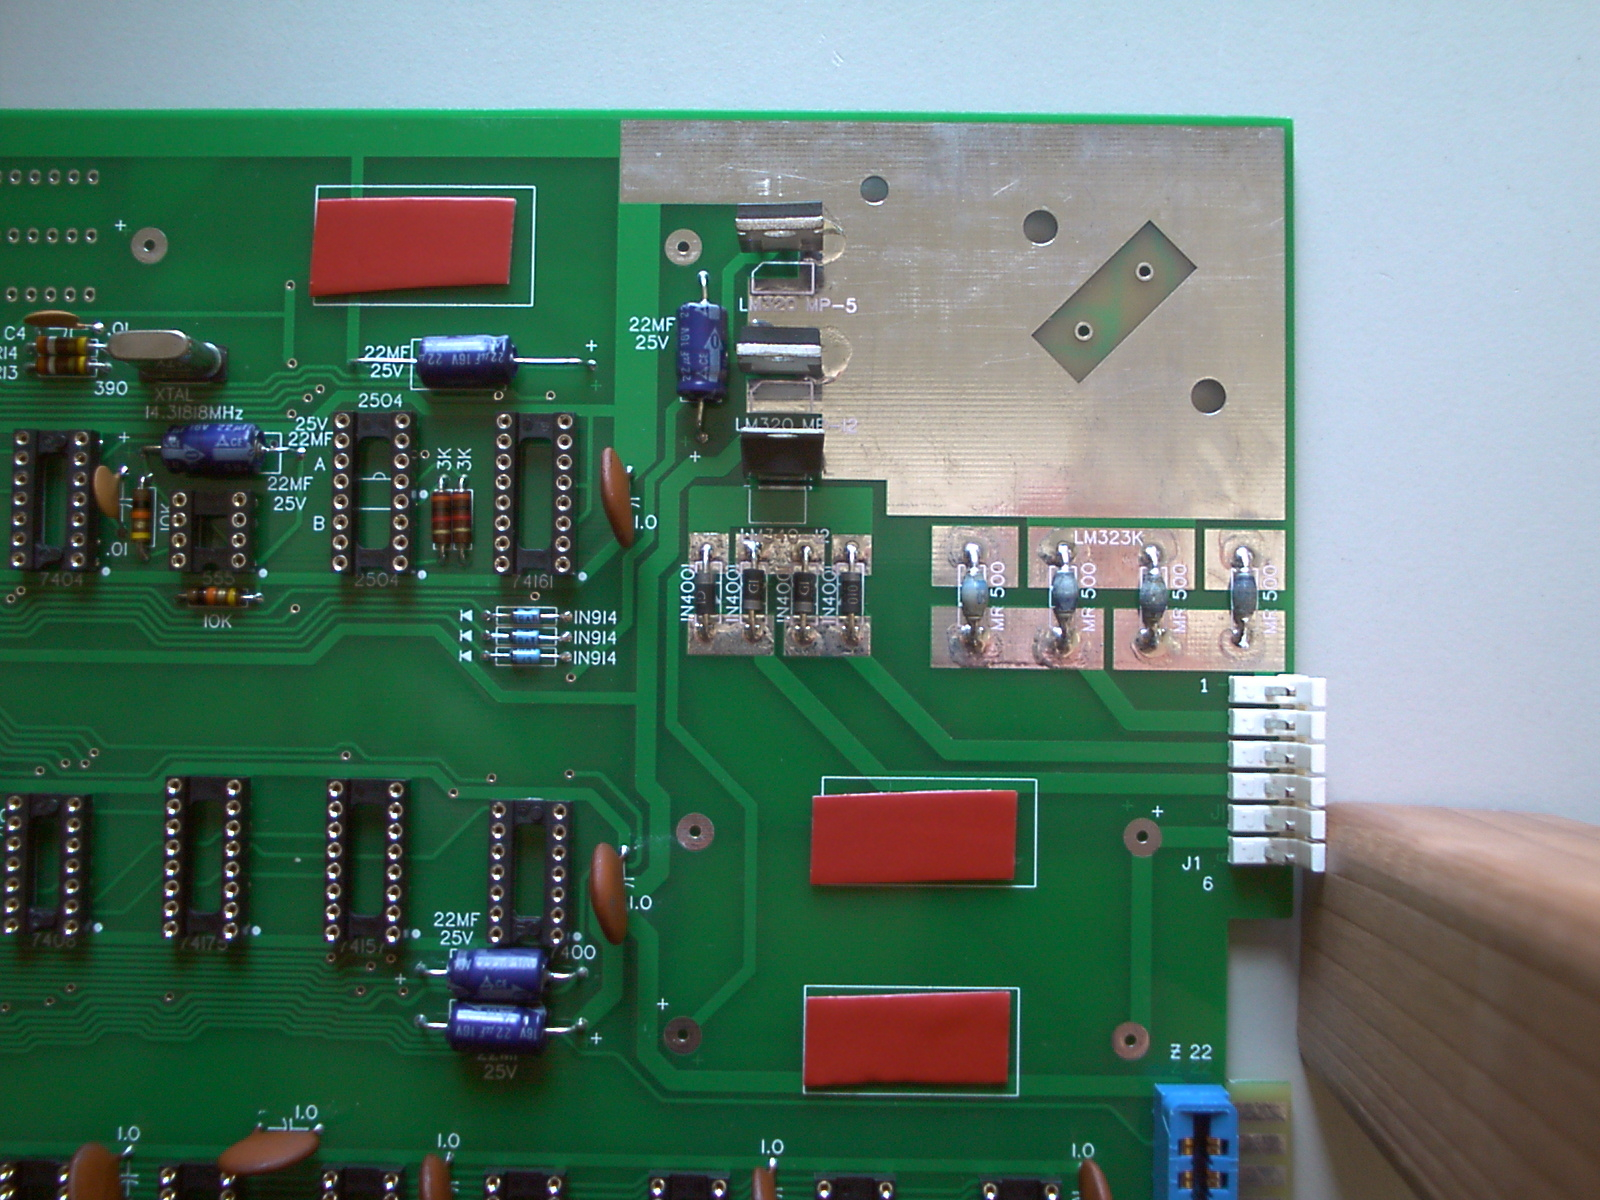 Small patches of sticky tape on Apple-1 PCB